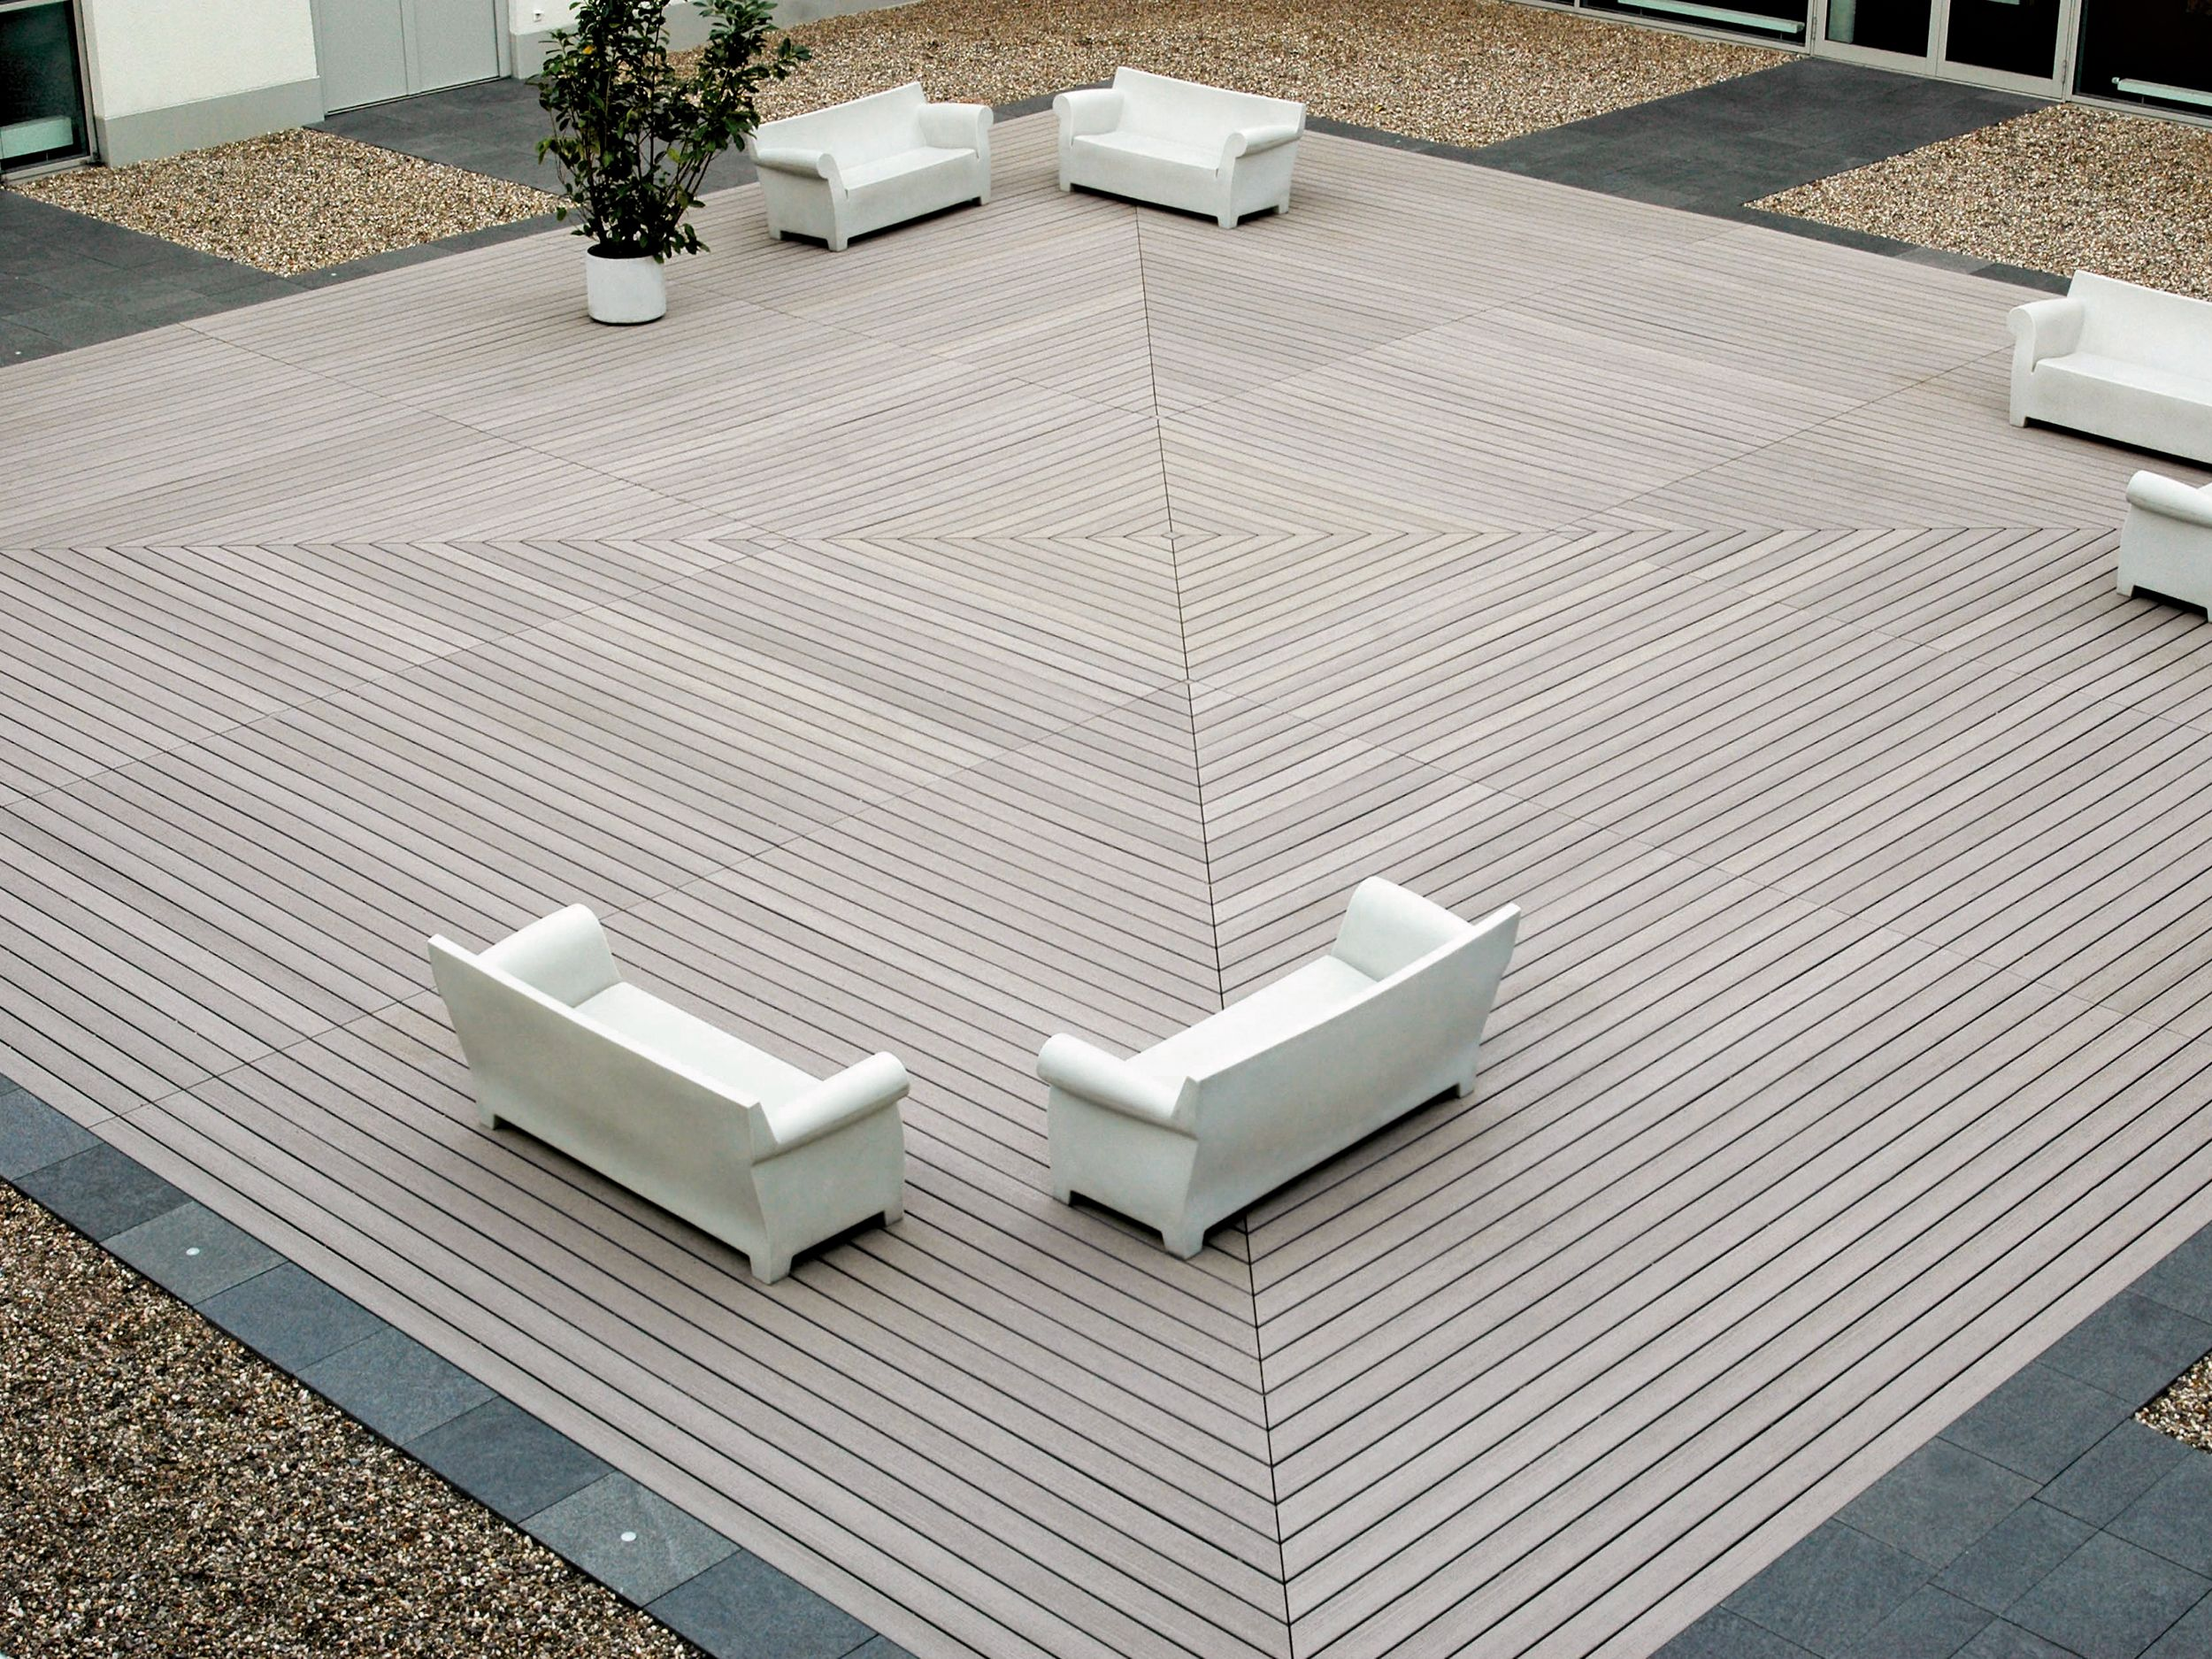 Cheap Click Together Pvc Outdoor Floor Tiles Outdoor Flooring Outdoor Wall Panels Wood Deck Designs